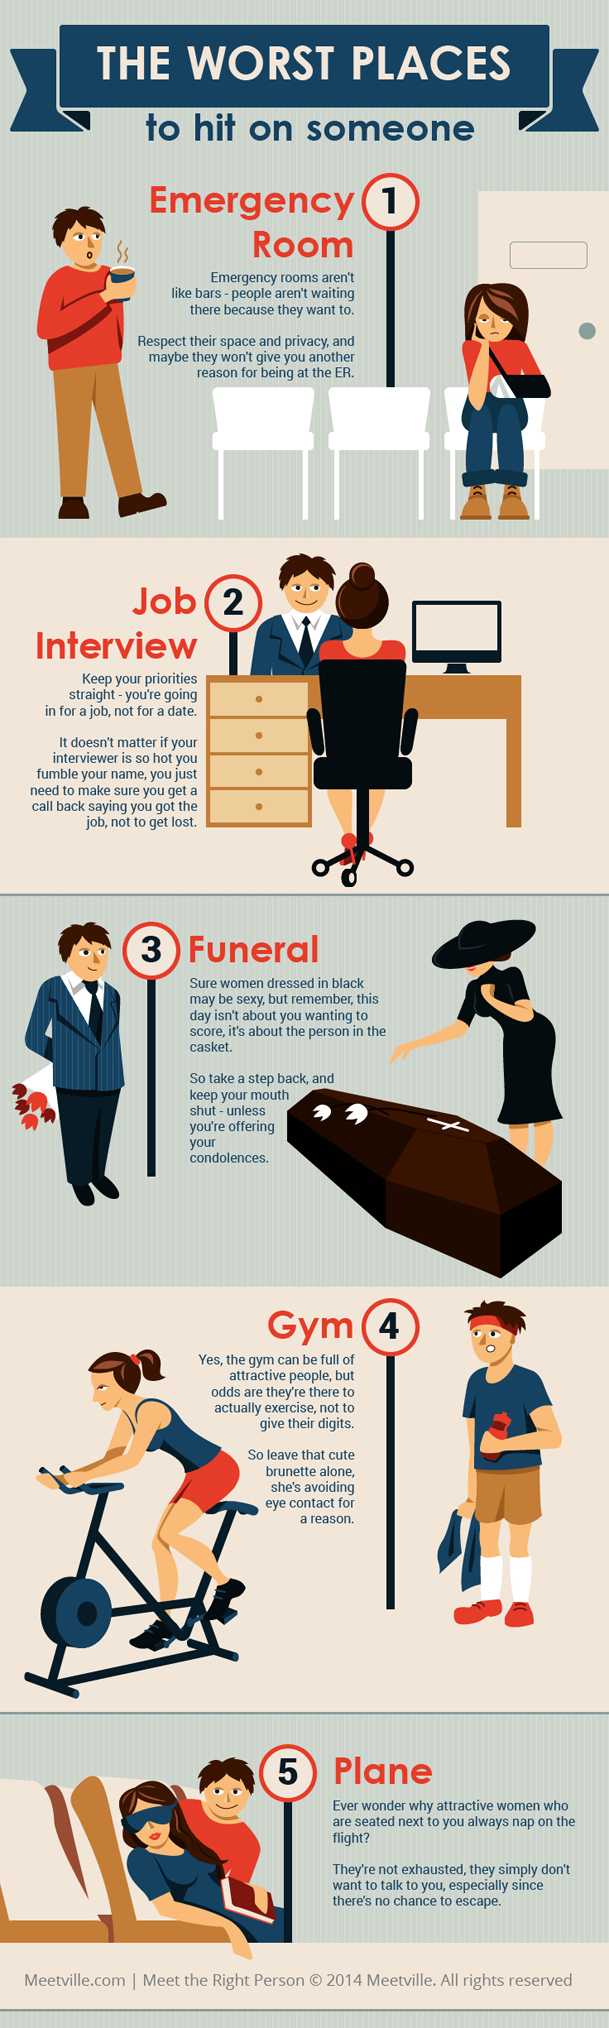 Places that Turn Flirt into a Disaster Infographic dating-singles-meetville-matchmaking